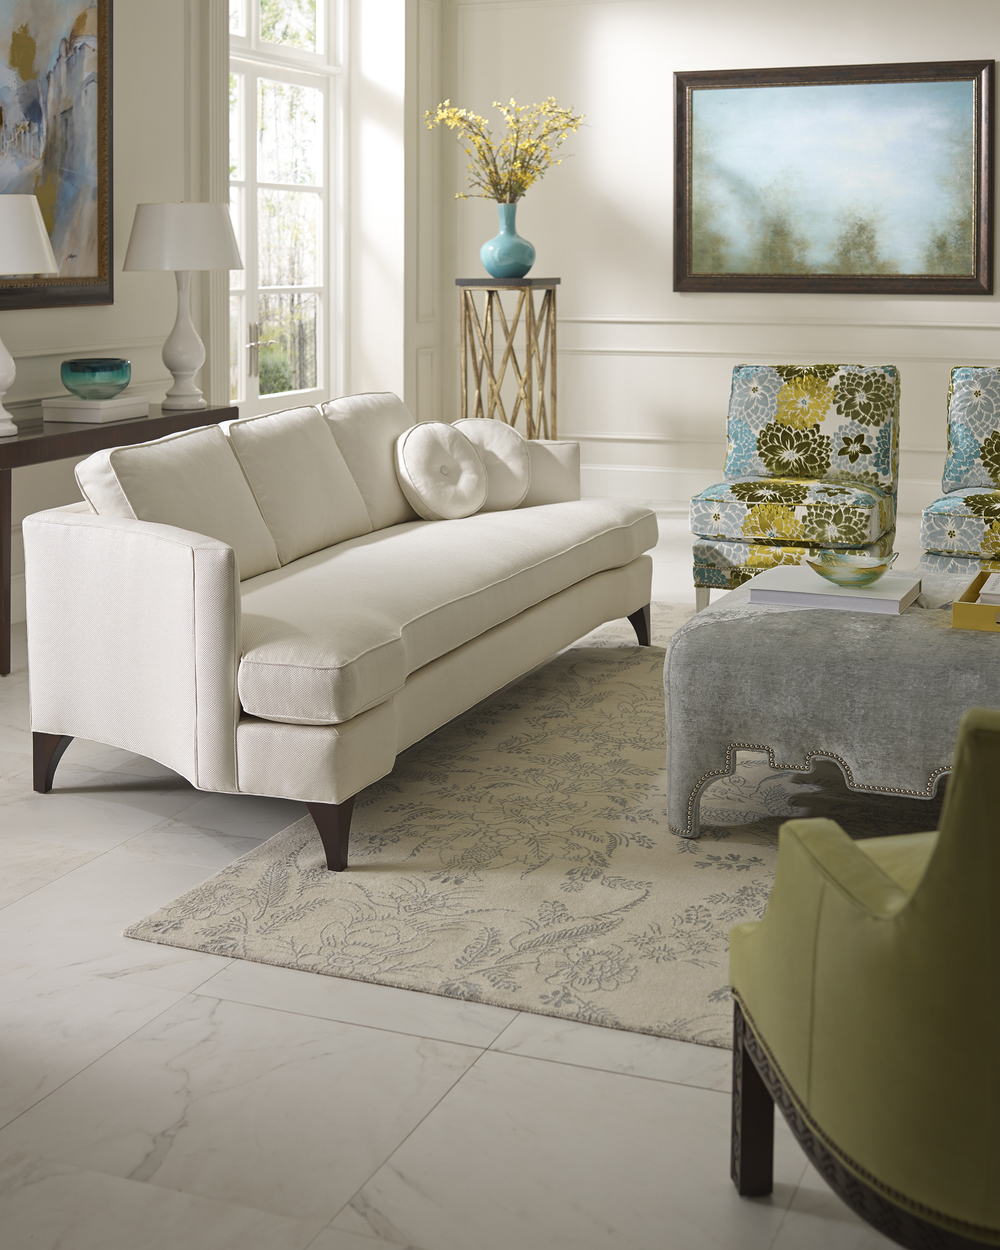 KHB Interiors New Orleans Taylor King Sofa Day of Design New Orleans Old Metairie